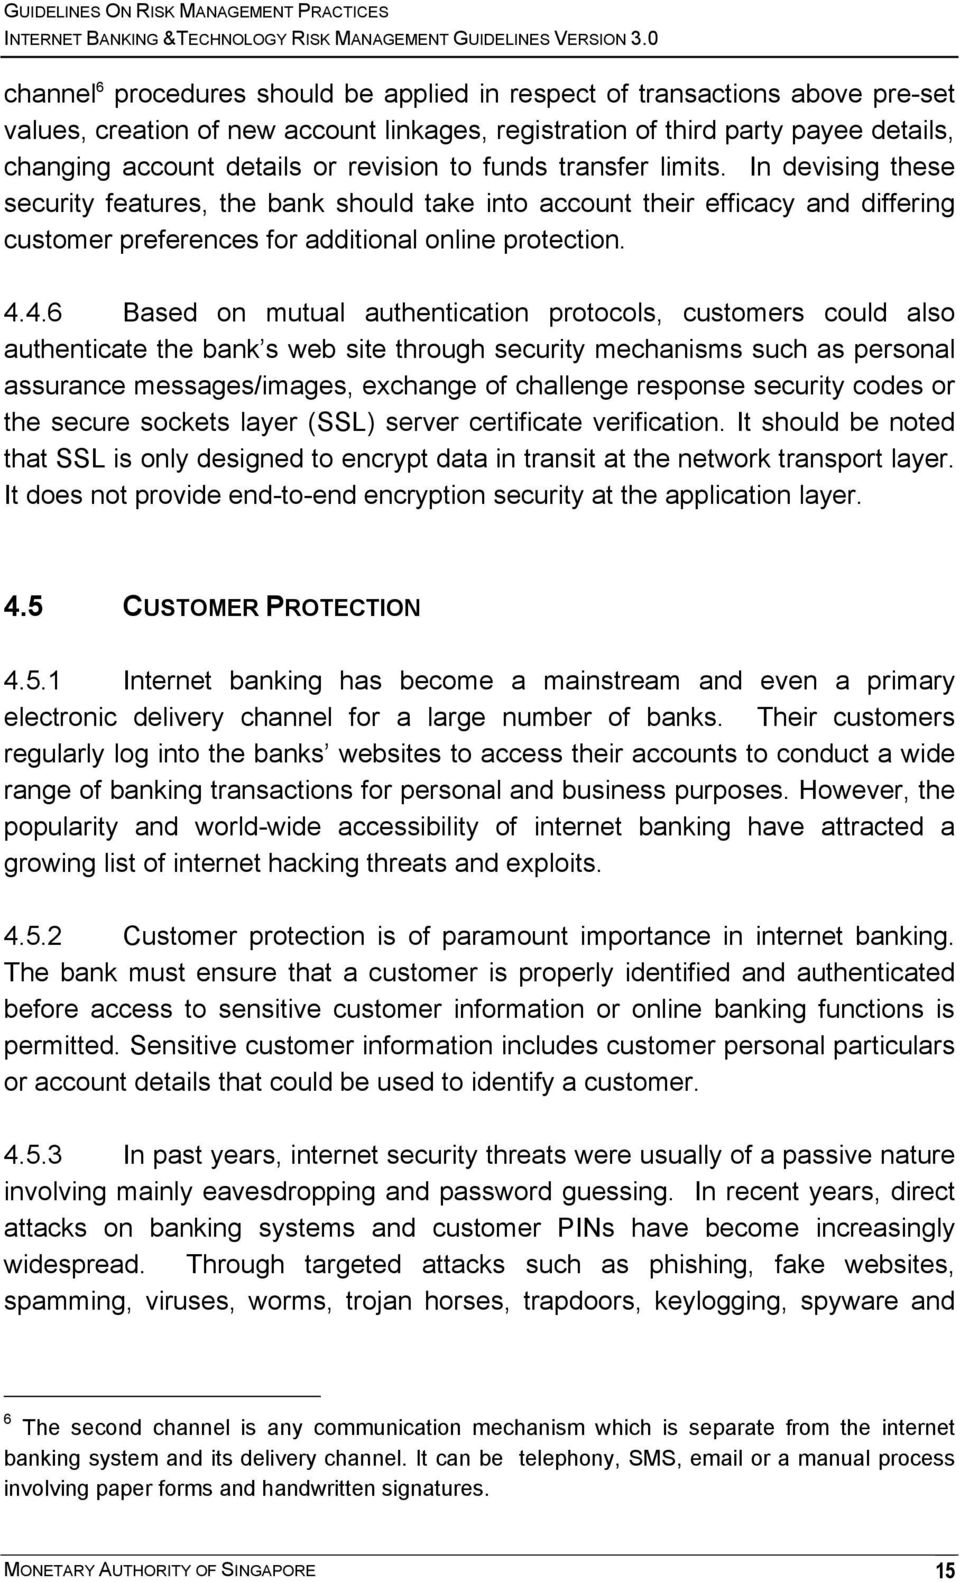 4.6 Based on mutual authentication protocols, customers could also authenticate the bank s web site through security mechanisms such as personal assurance messages/images, exchange of challenge